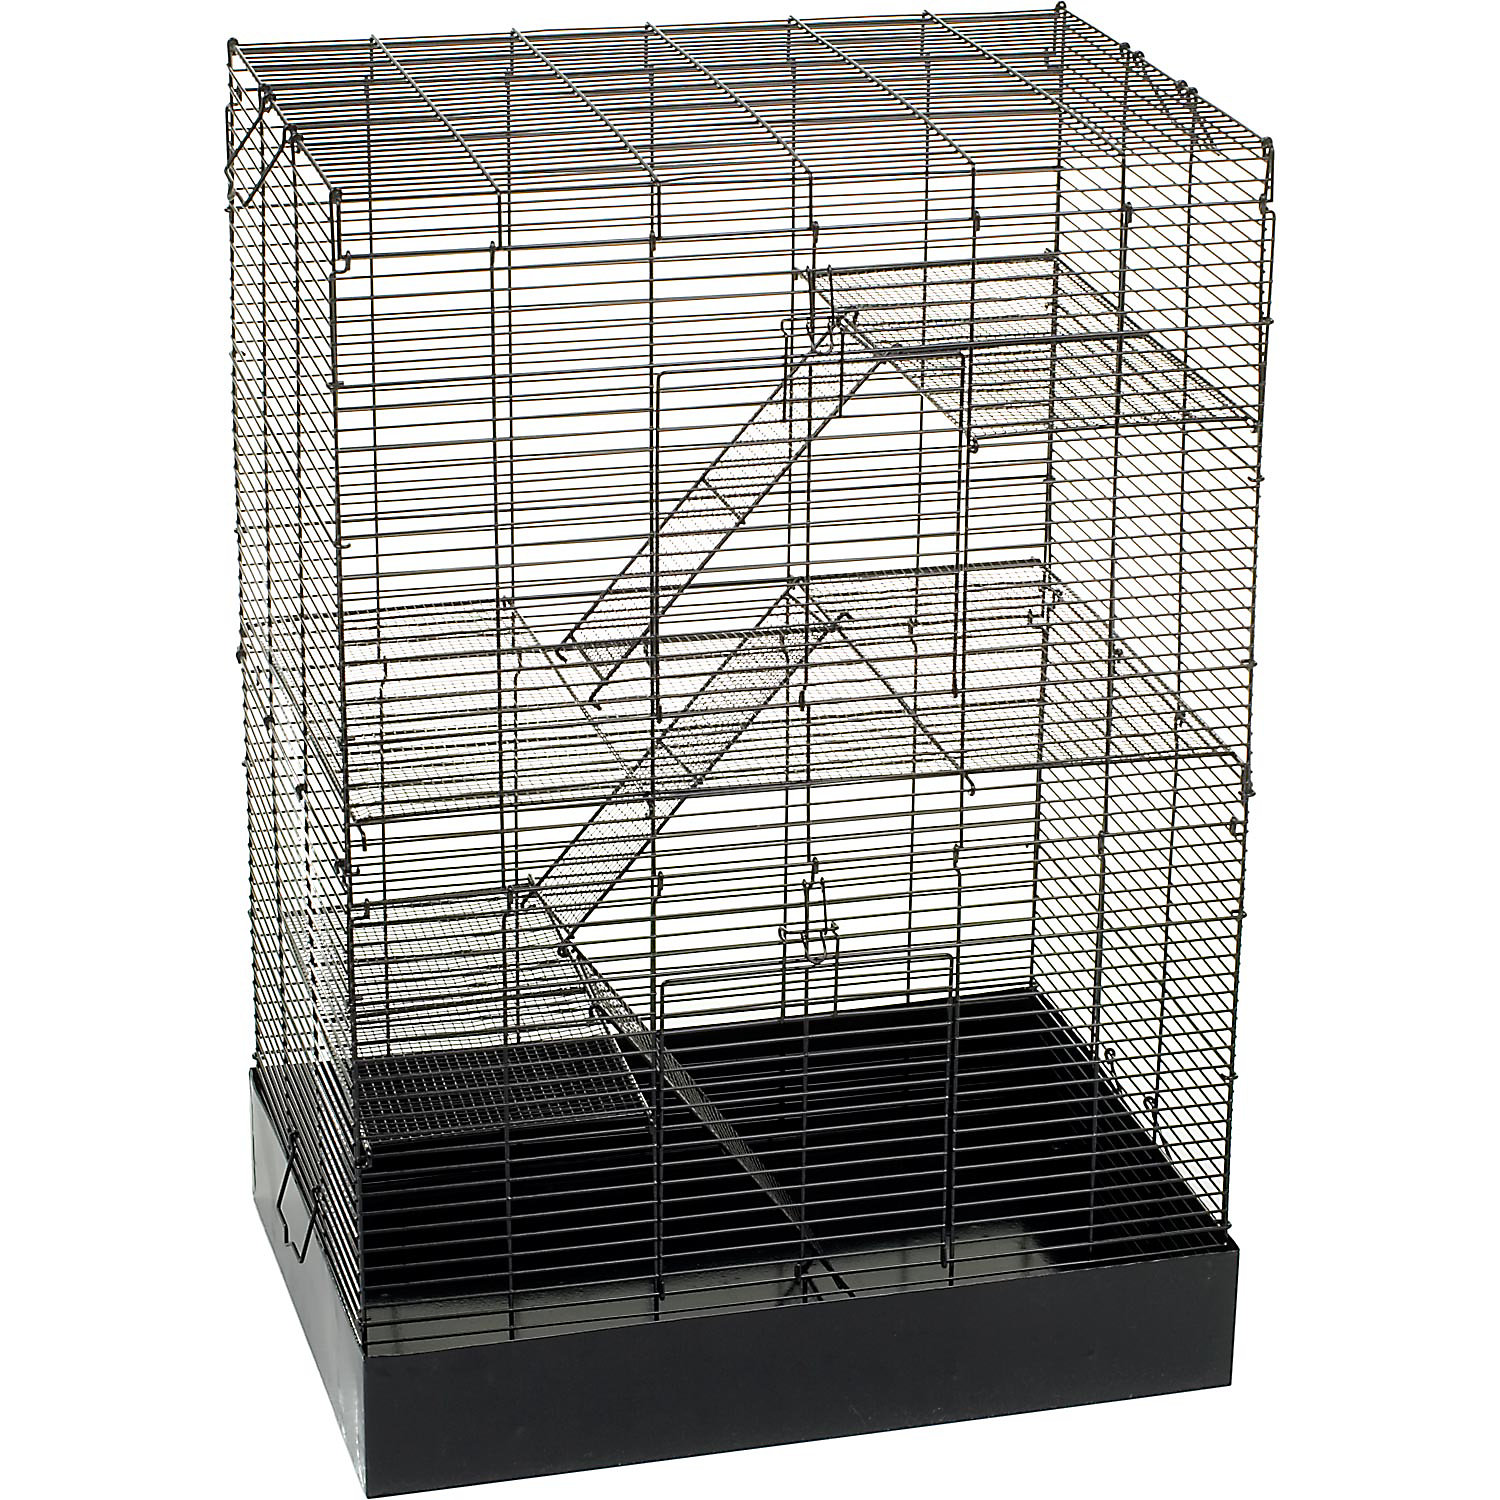 You  Me Rat Manor Habitat 16.5 L X 22.5 W X 32 H 16.5 IN Black